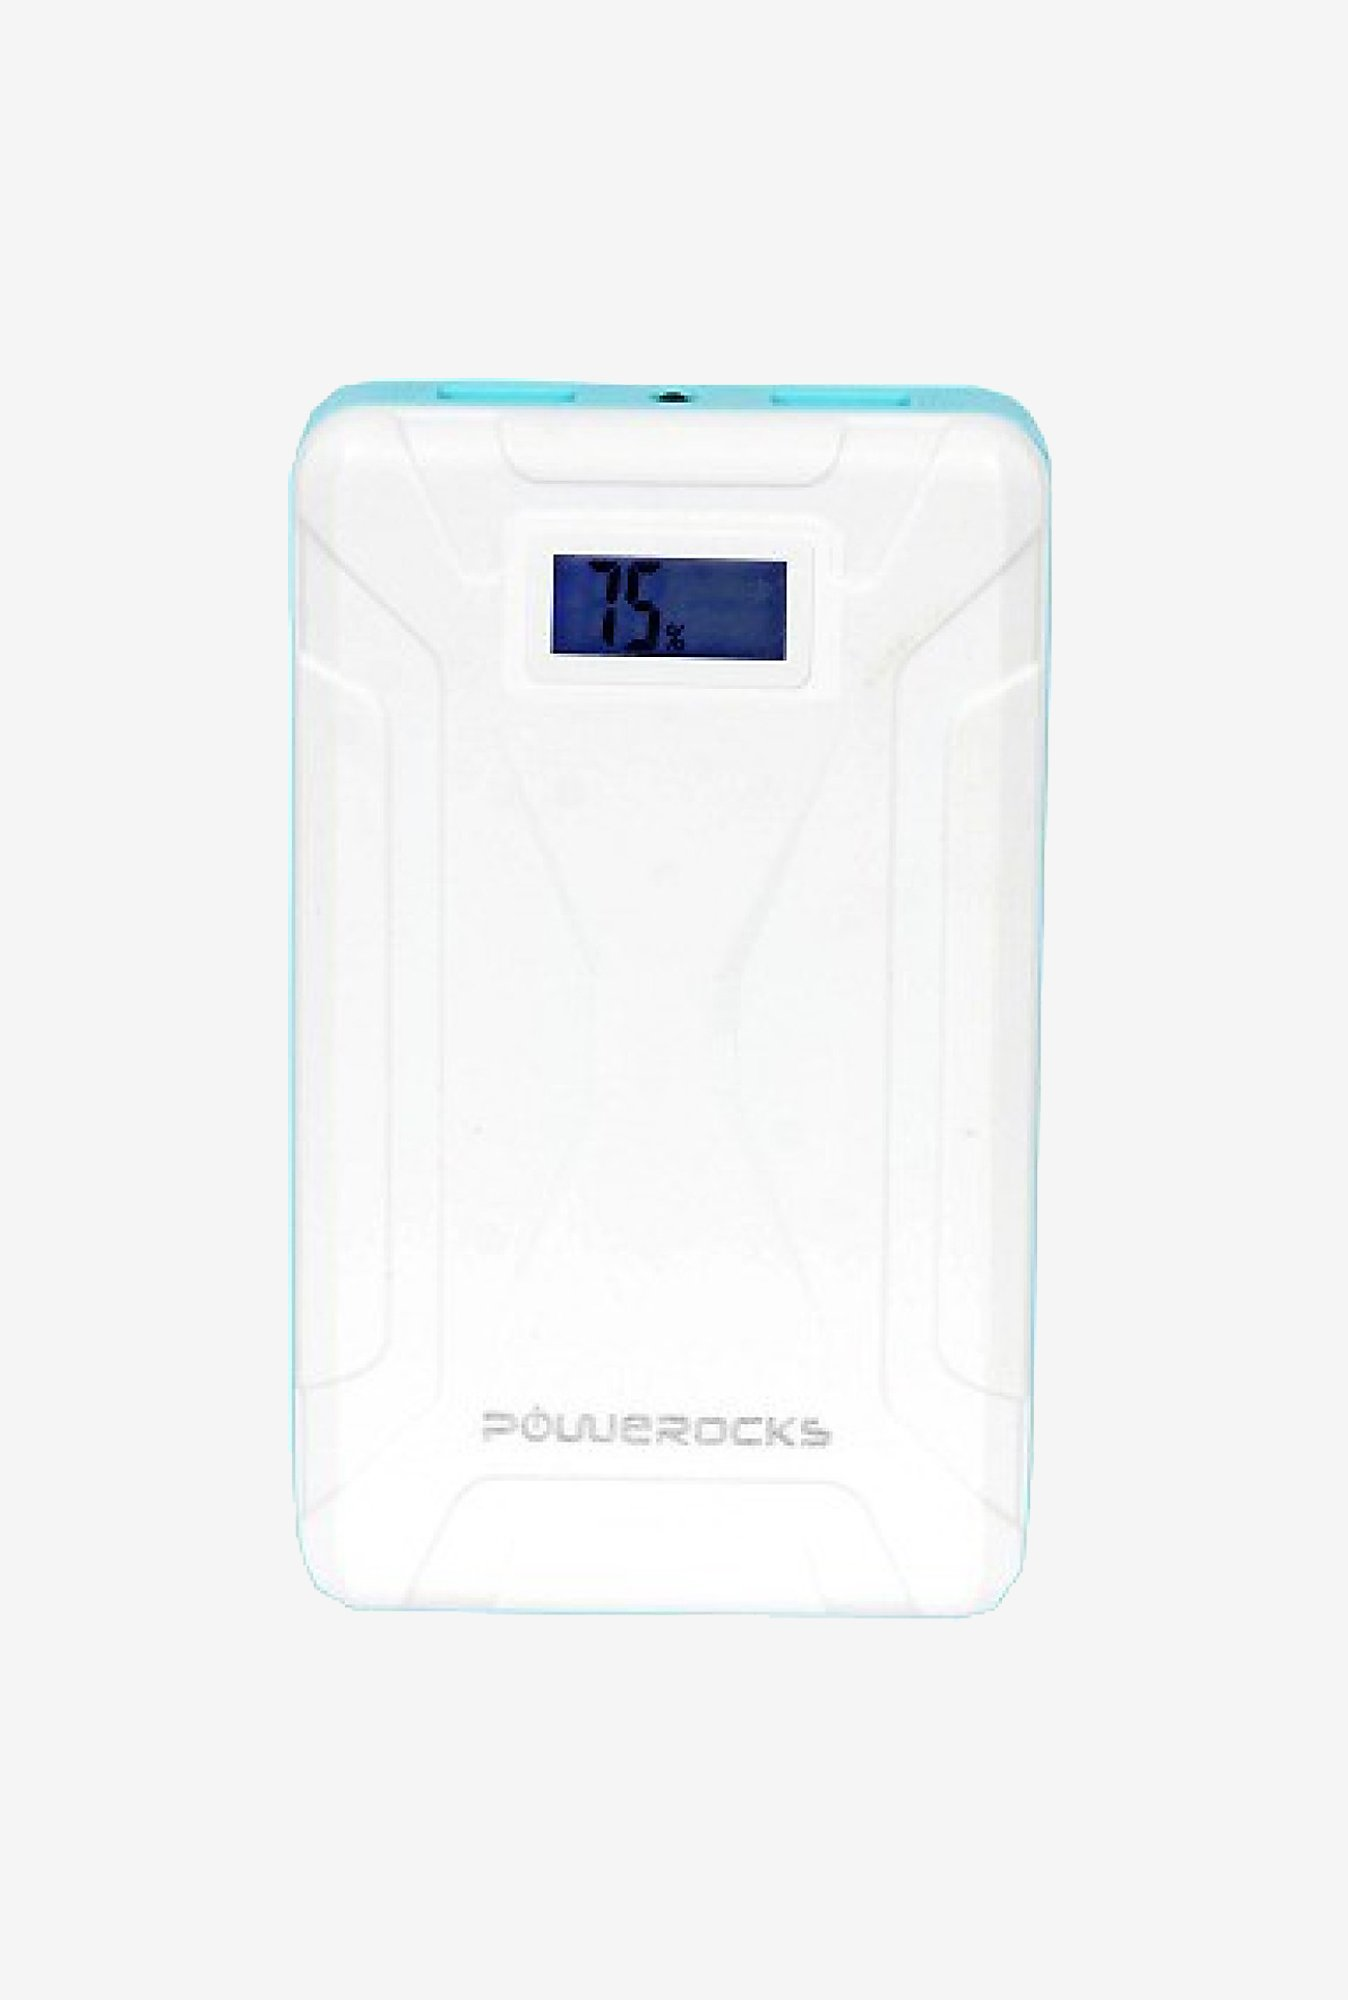 Powerocks Mach 125 12500mAh Power Bank (White & Blue)